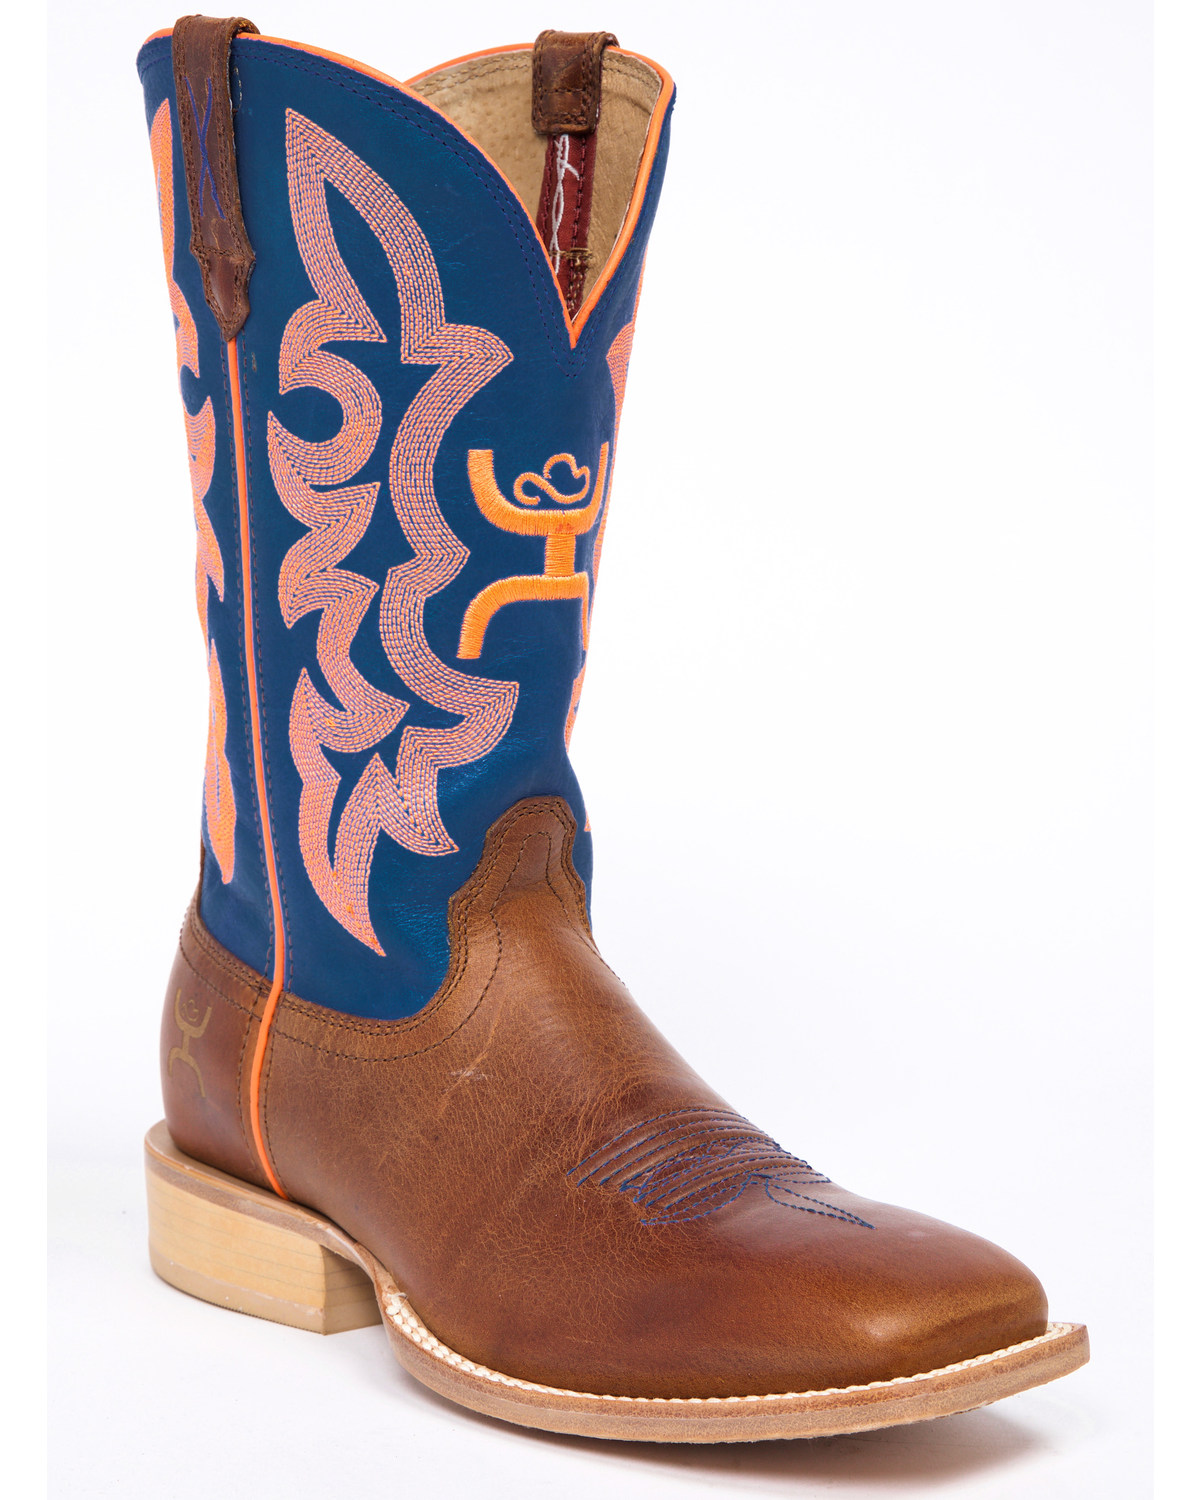 a10ef0d99d6 Hooey by Twisted X Neon Blue Cowgirl Boots - Wide Square Toe